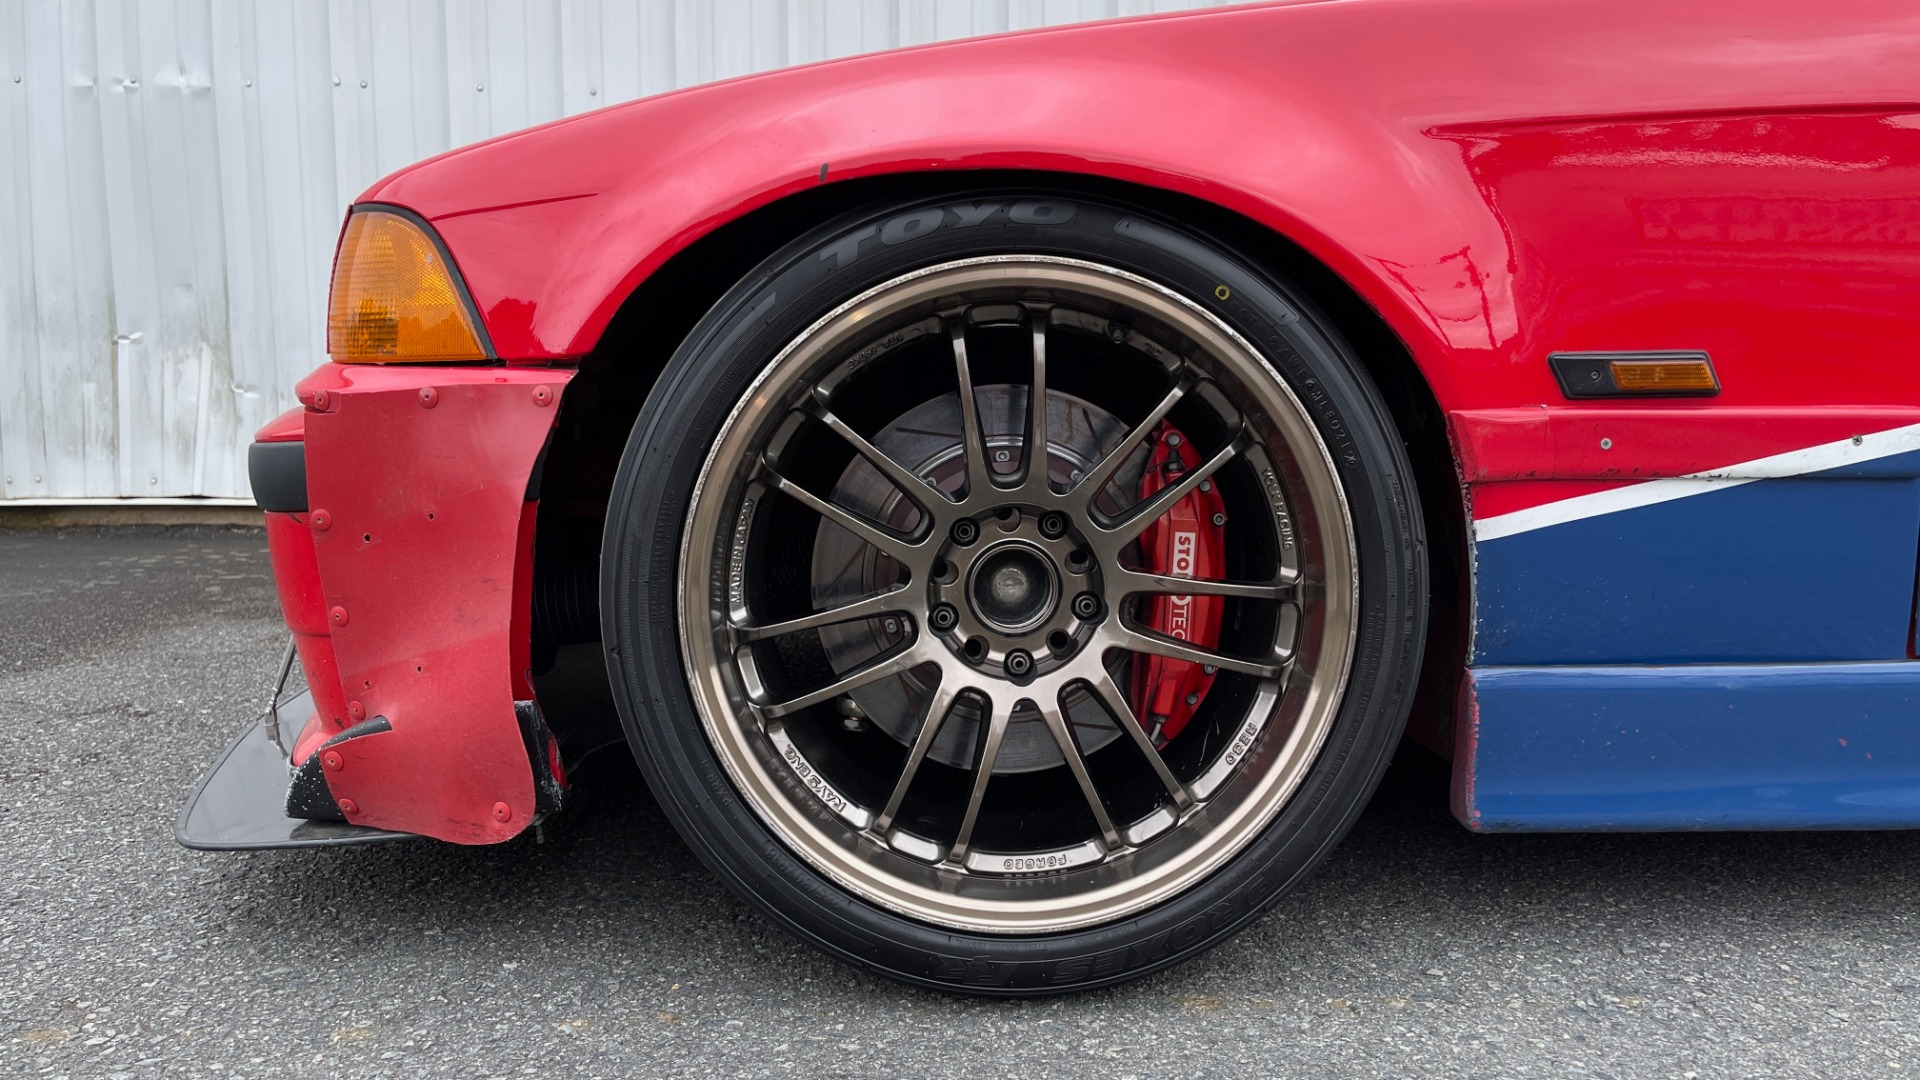 Used 1996 BMW 3-SERIES M3 TRACK CAR / 5-SPD / MANUAL / FULL CAGE / CARBON FIBER WING for sale $47,995 at Formula Imports in Charlotte NC 28227 13